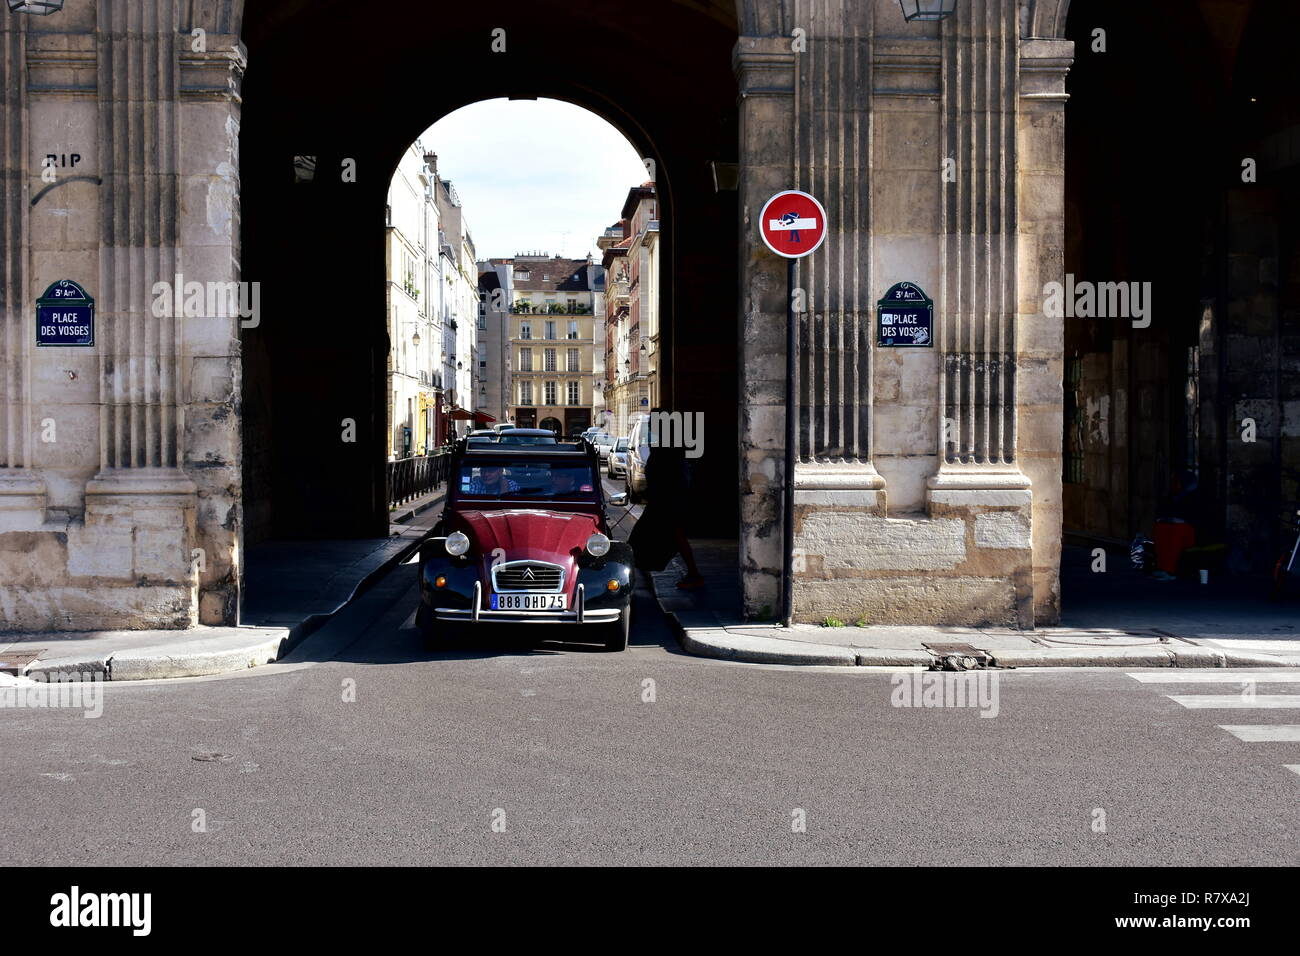 2cv paris stock photos  u0026 2cv paris stock images